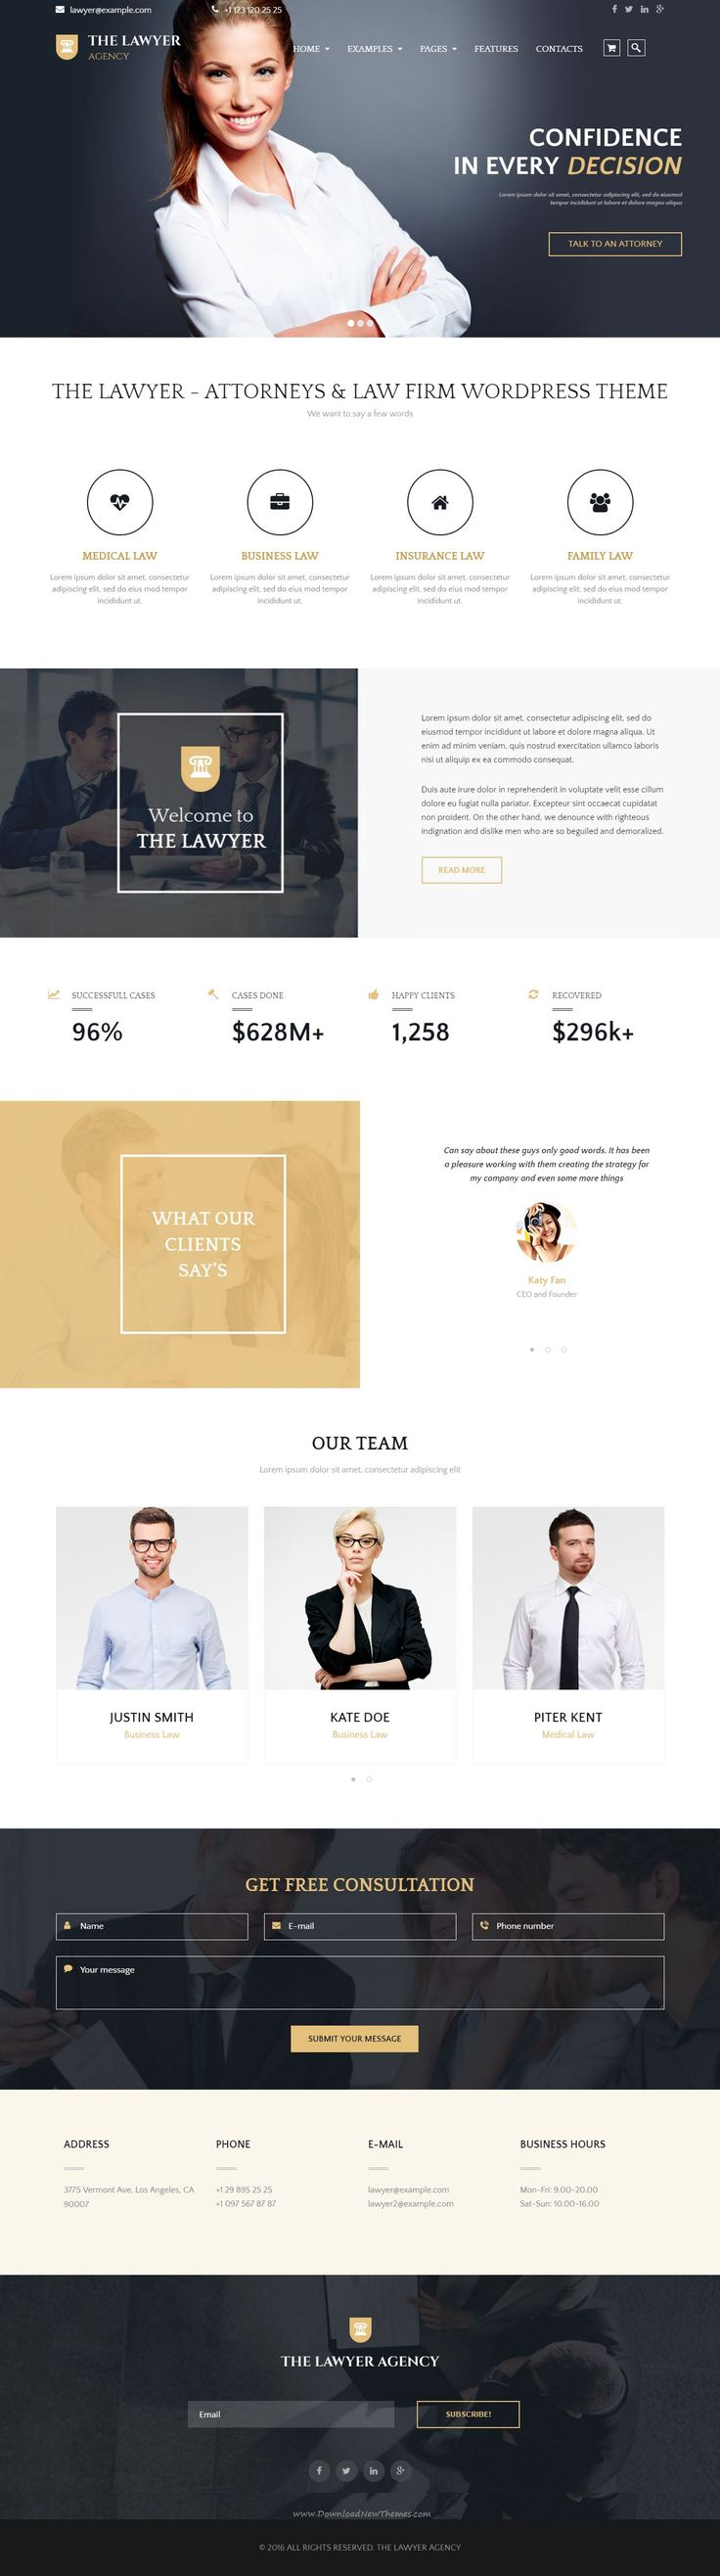 The Lawyer - Attorneys & Law Firm WordPress Theme #lawyer #website Live Preview & Download -> http://themeforest.net/item/the-lawyer-attorneys-law-firm-wordpress-theme/15107662?ref=Datasata